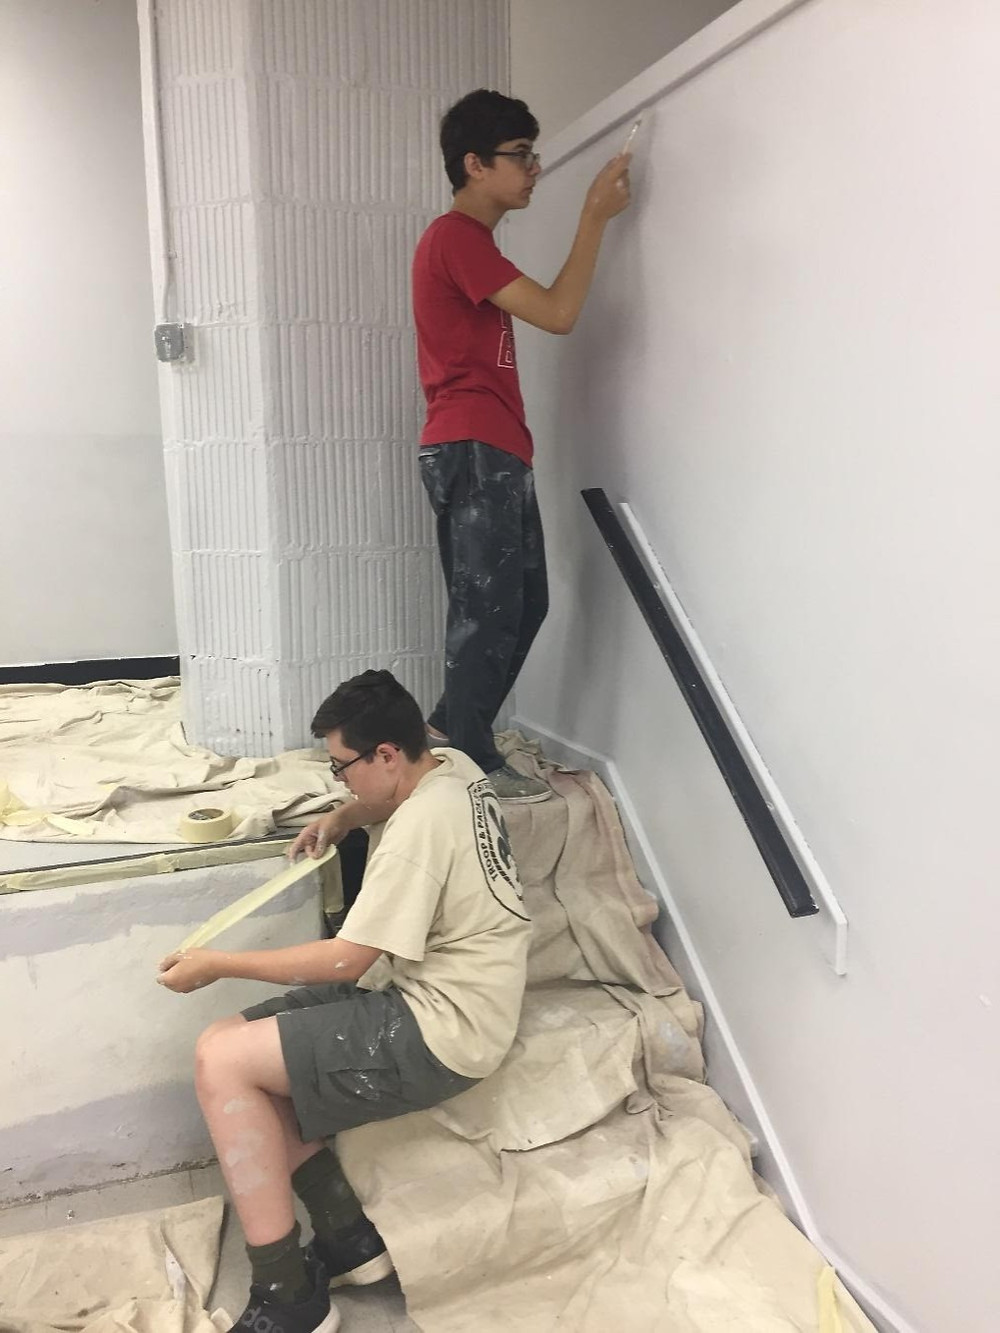 Jonathan Reverendo of Unit 305 (standing) painted the walls as part of his Eagle Project to revitalize Hedges Hall of St. Stephen's Church in Kearny along with fellow Scouts, including Nate Jablonski